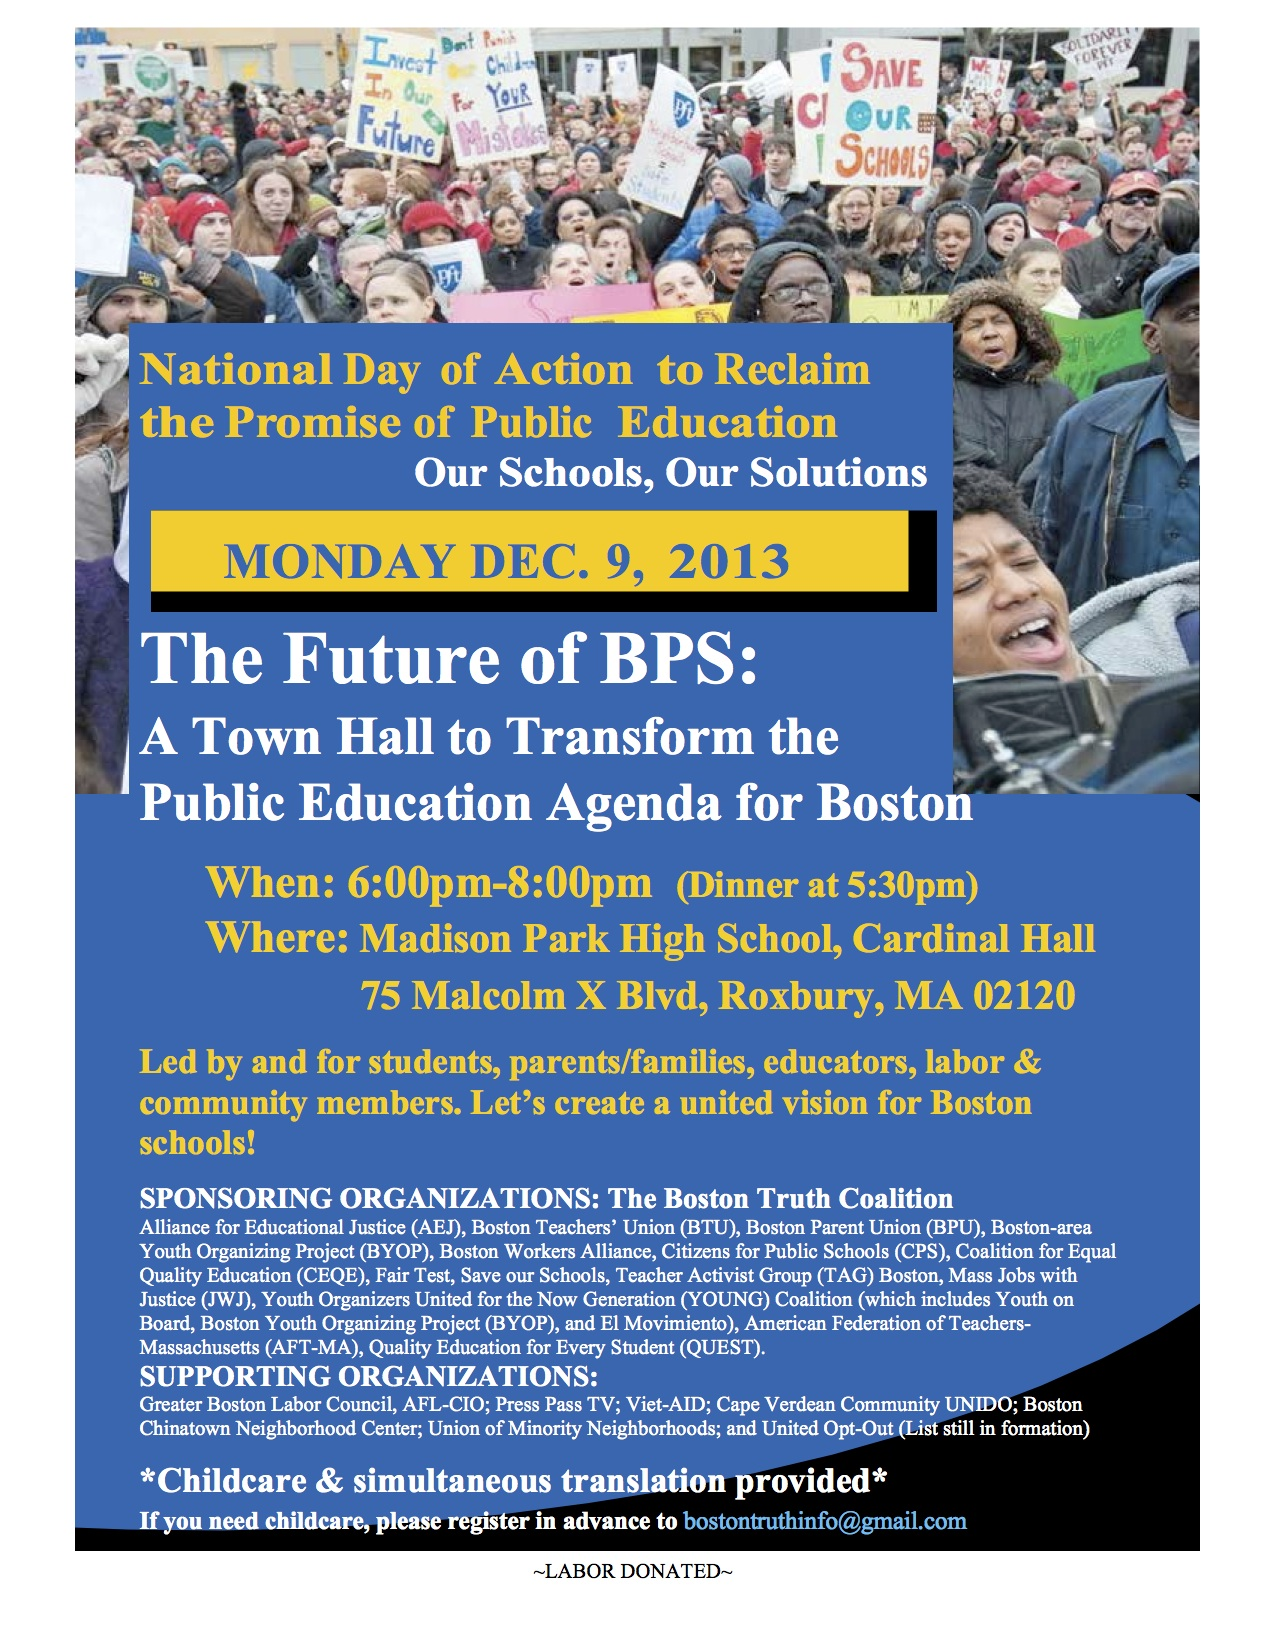 Day of Action flyer-Boston